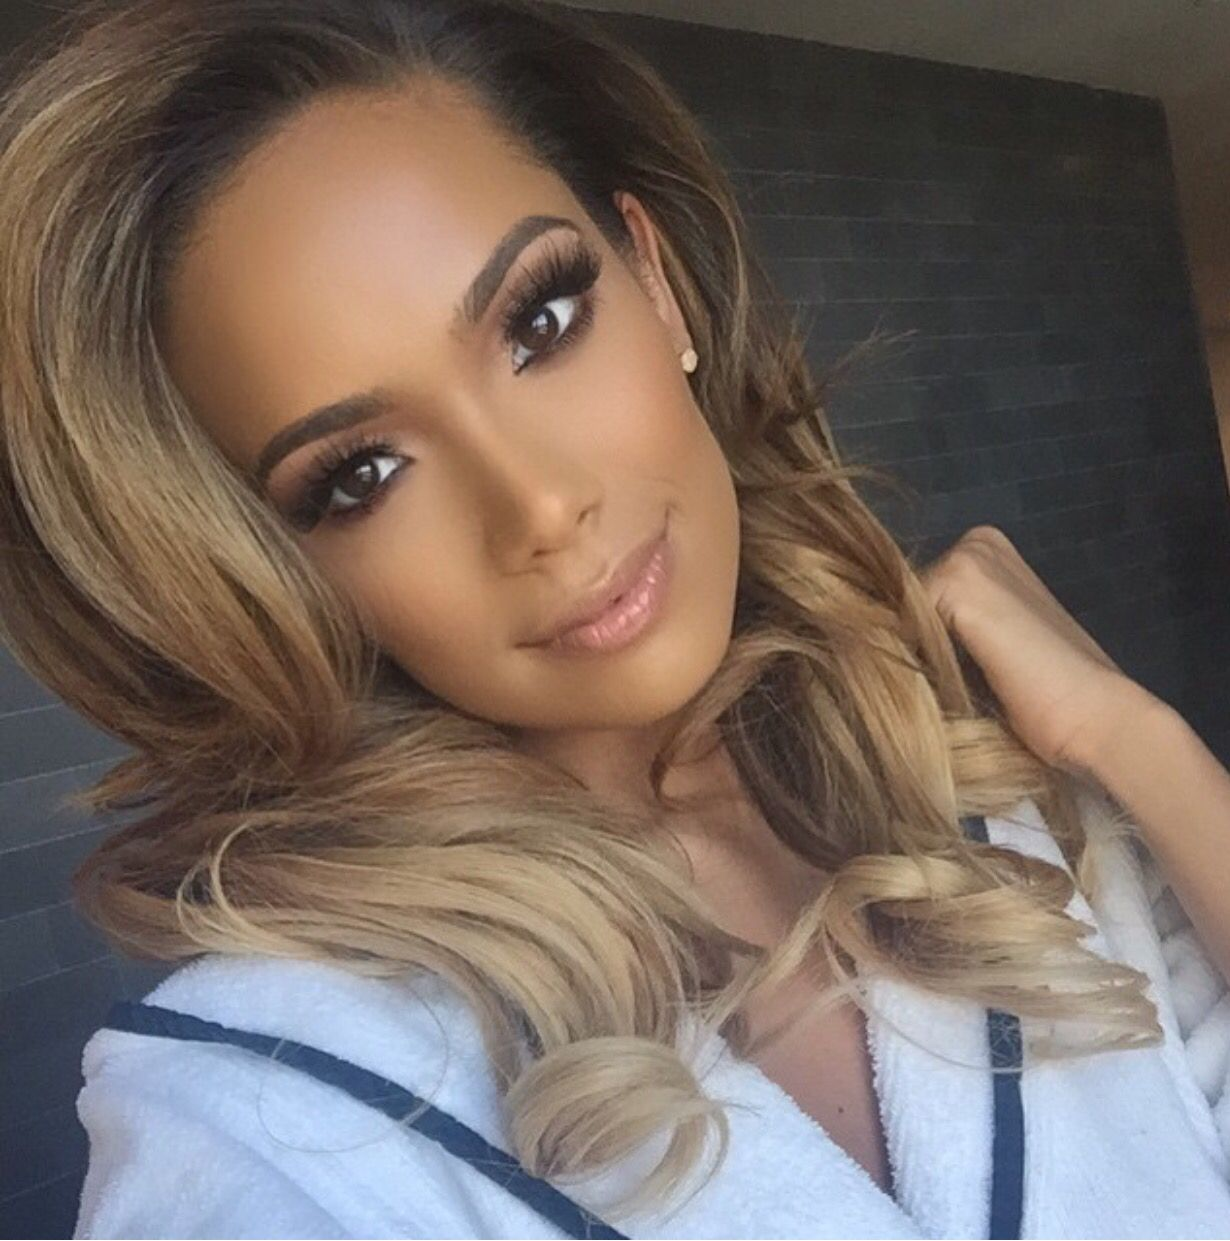 Erica Mena Breaks The Internet In A Skimpy Golden Swimsuit By The Pool – Check Out The Thirst Traps 7 Months Postpartum